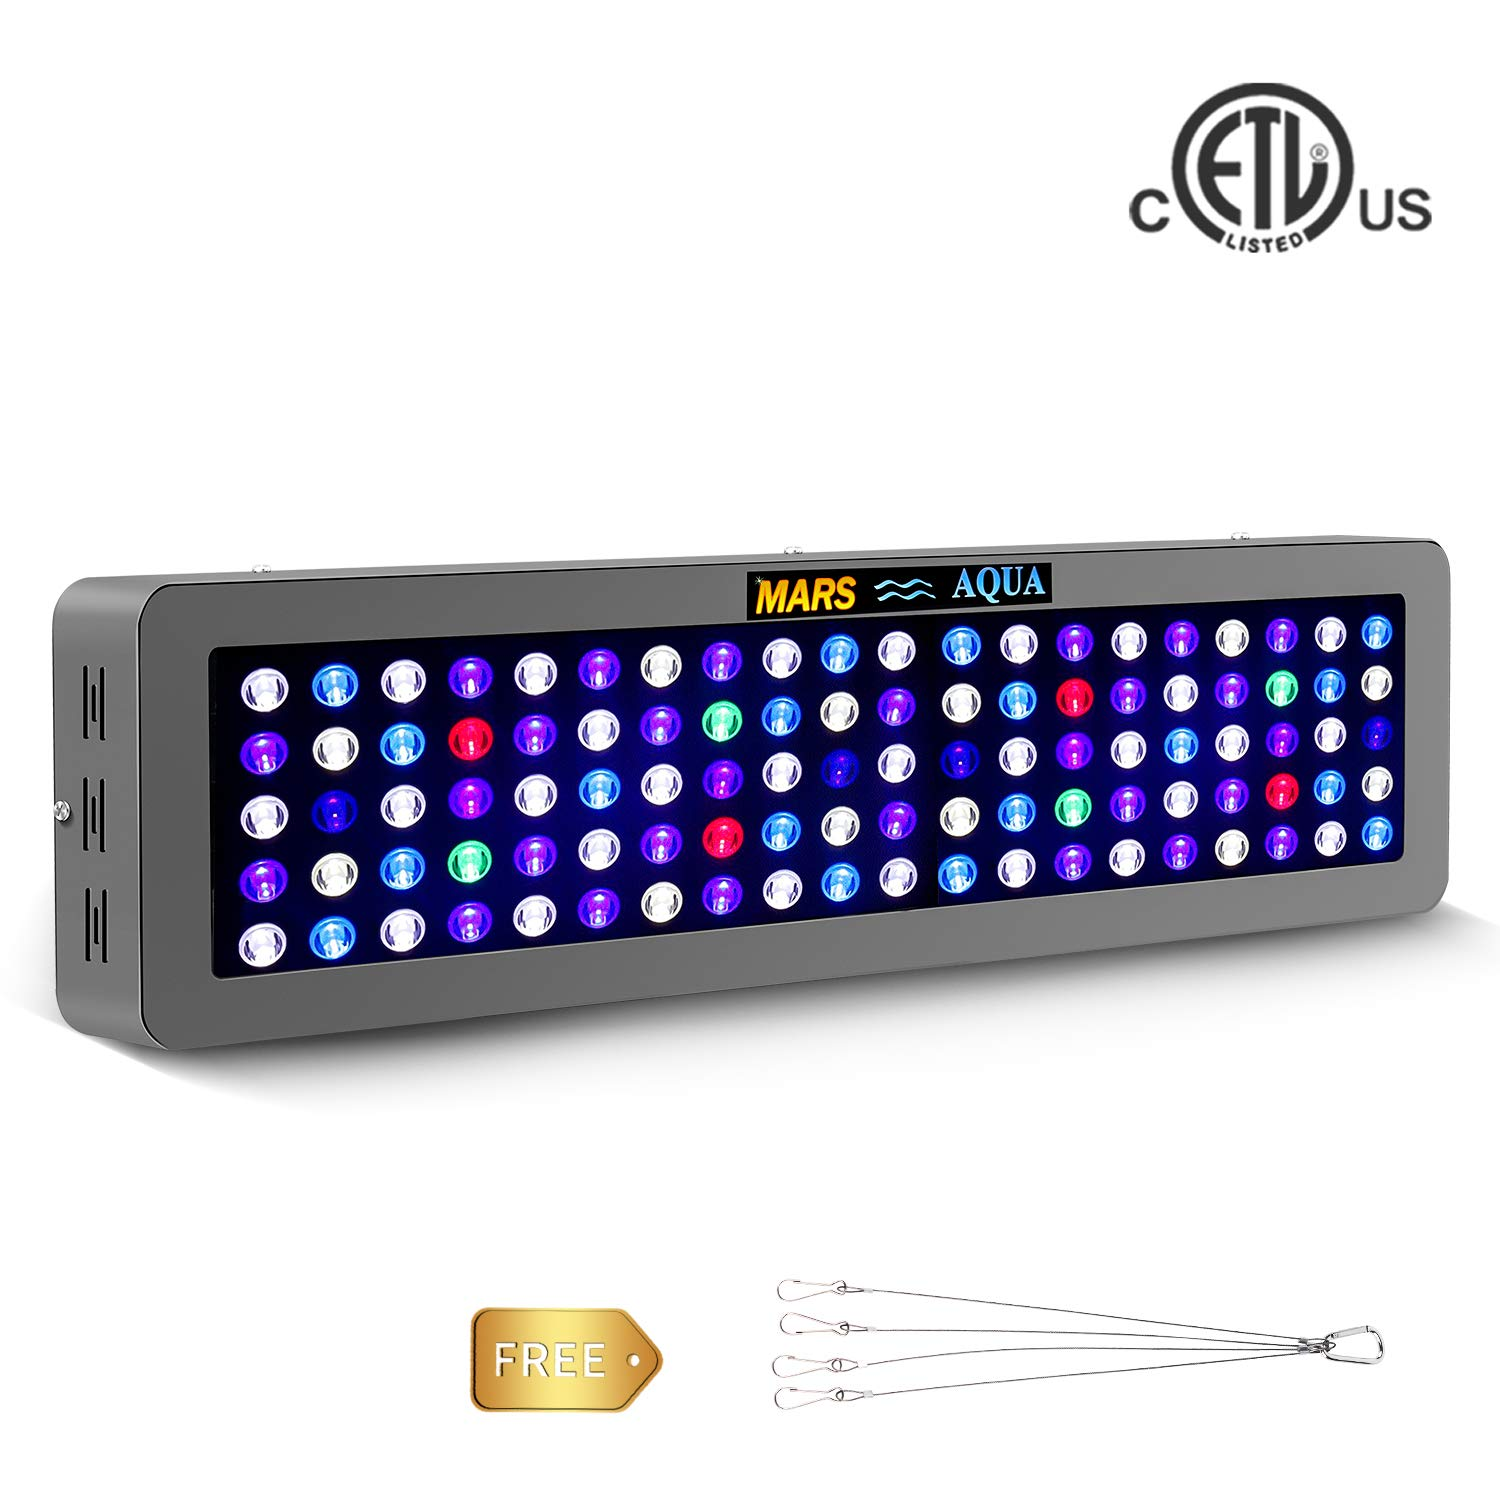 MarsAqua LED Aquarium Light lighting Dimmable 300w Full Spectrum For Freshwater and Saltwater Fish Coral Tank bluee and White LPS SPS